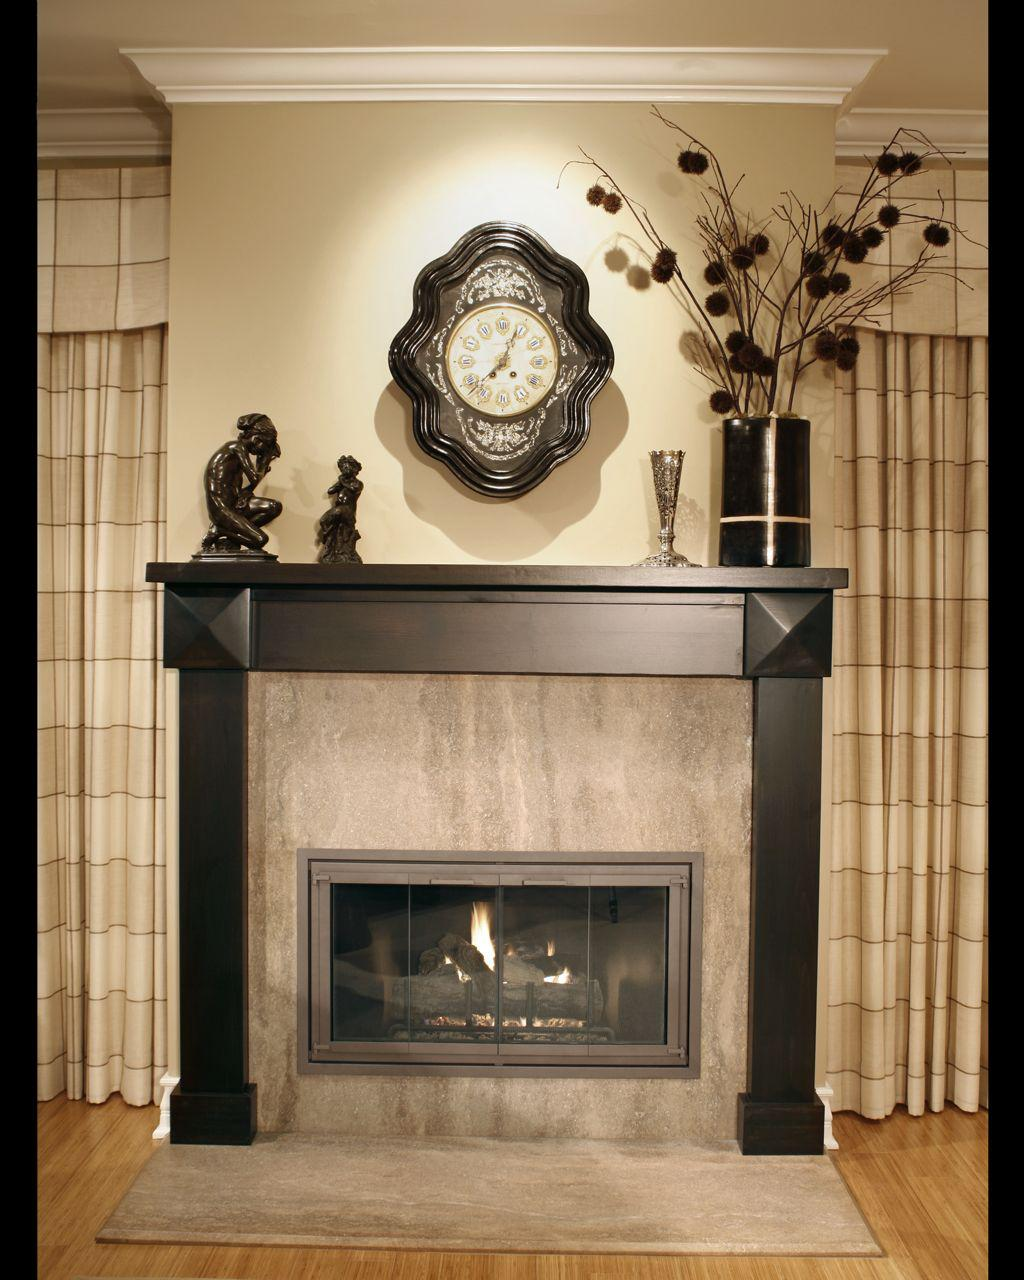 Wall Decoration Above Fireplace : Tips to make fireplace mantel d?cor for a wedding day